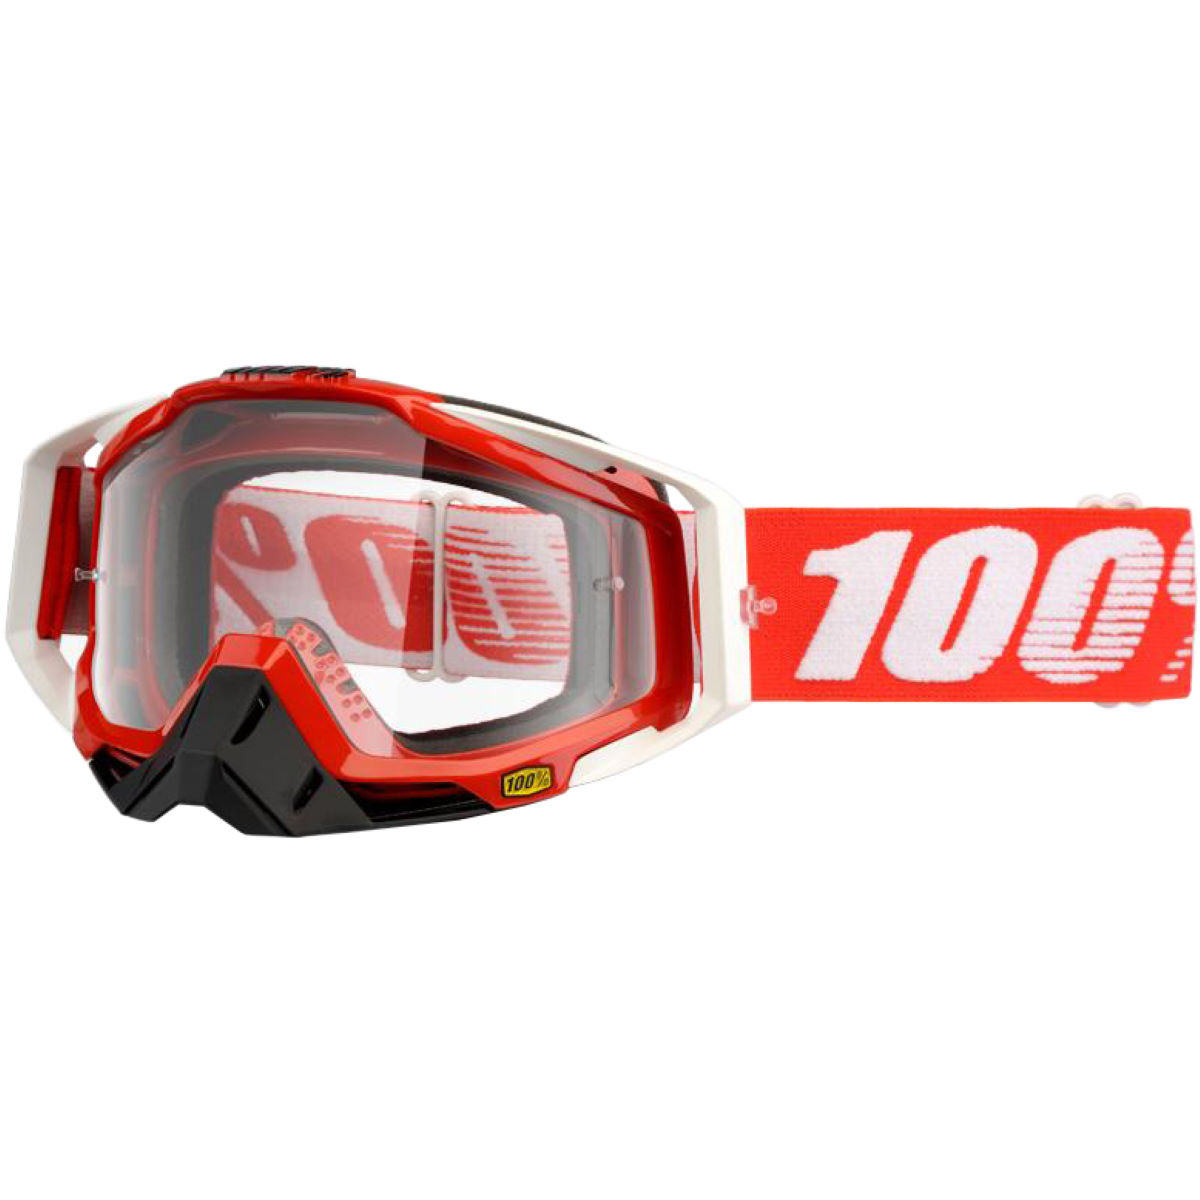 100% Racecraft Goggle - Clear Lens - One Size Fire Red